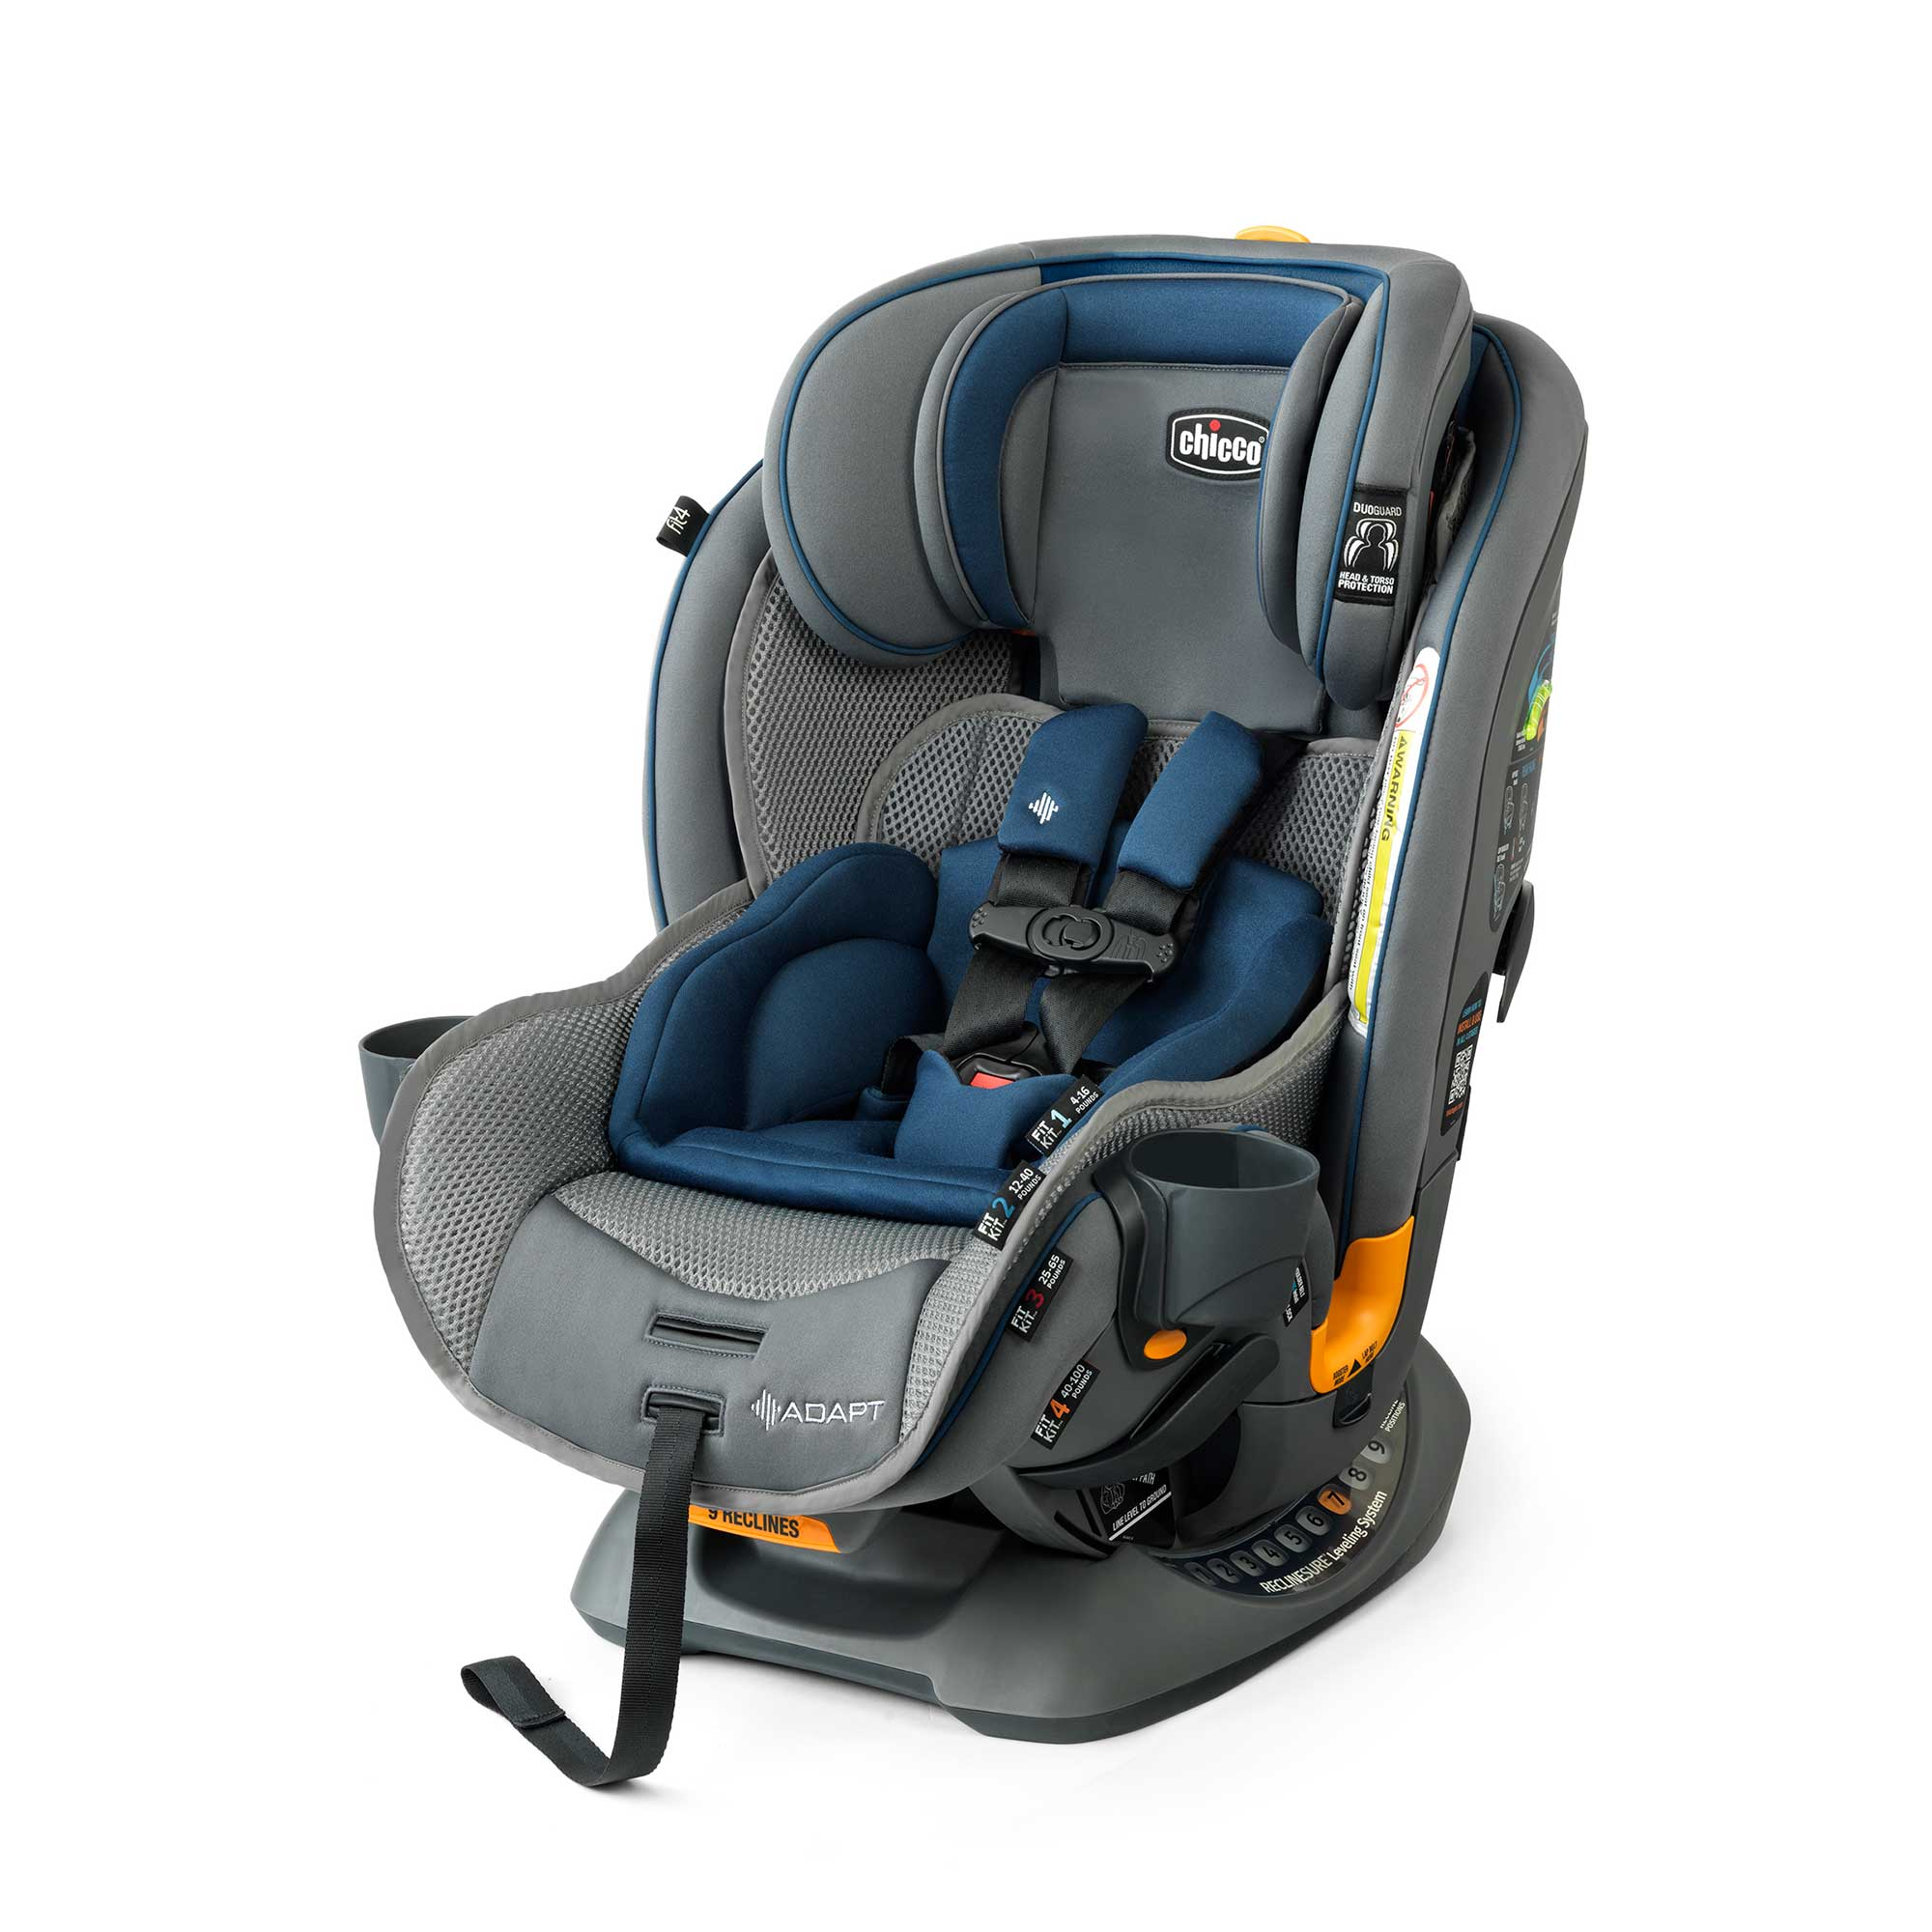 Chicco Fit4 Adapt 4-in-1 Convertible Car Seat - Vapor | Chicco